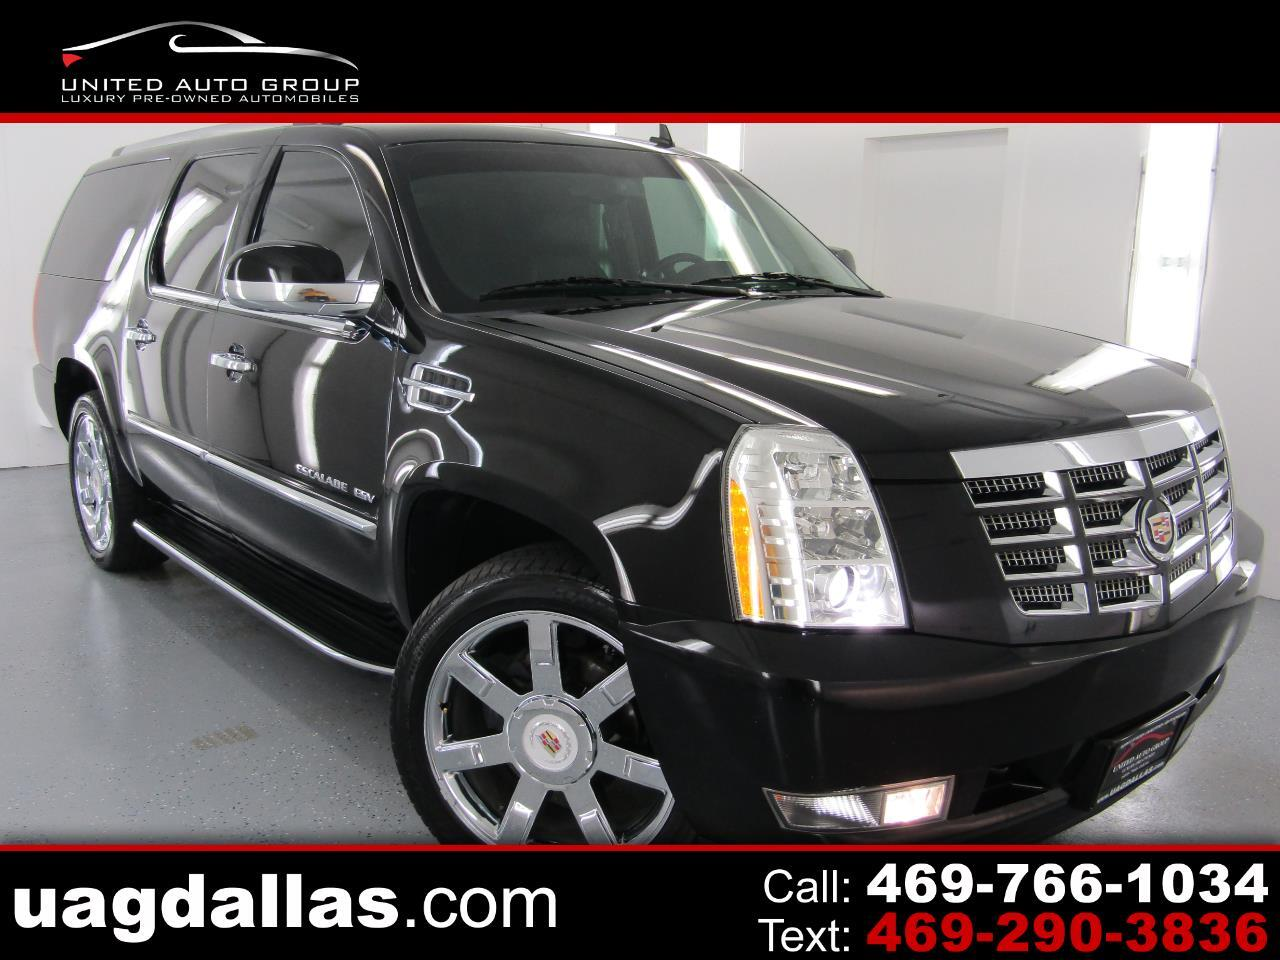 Cadillac Escalade ESV AWD 4dr Luxury 2014